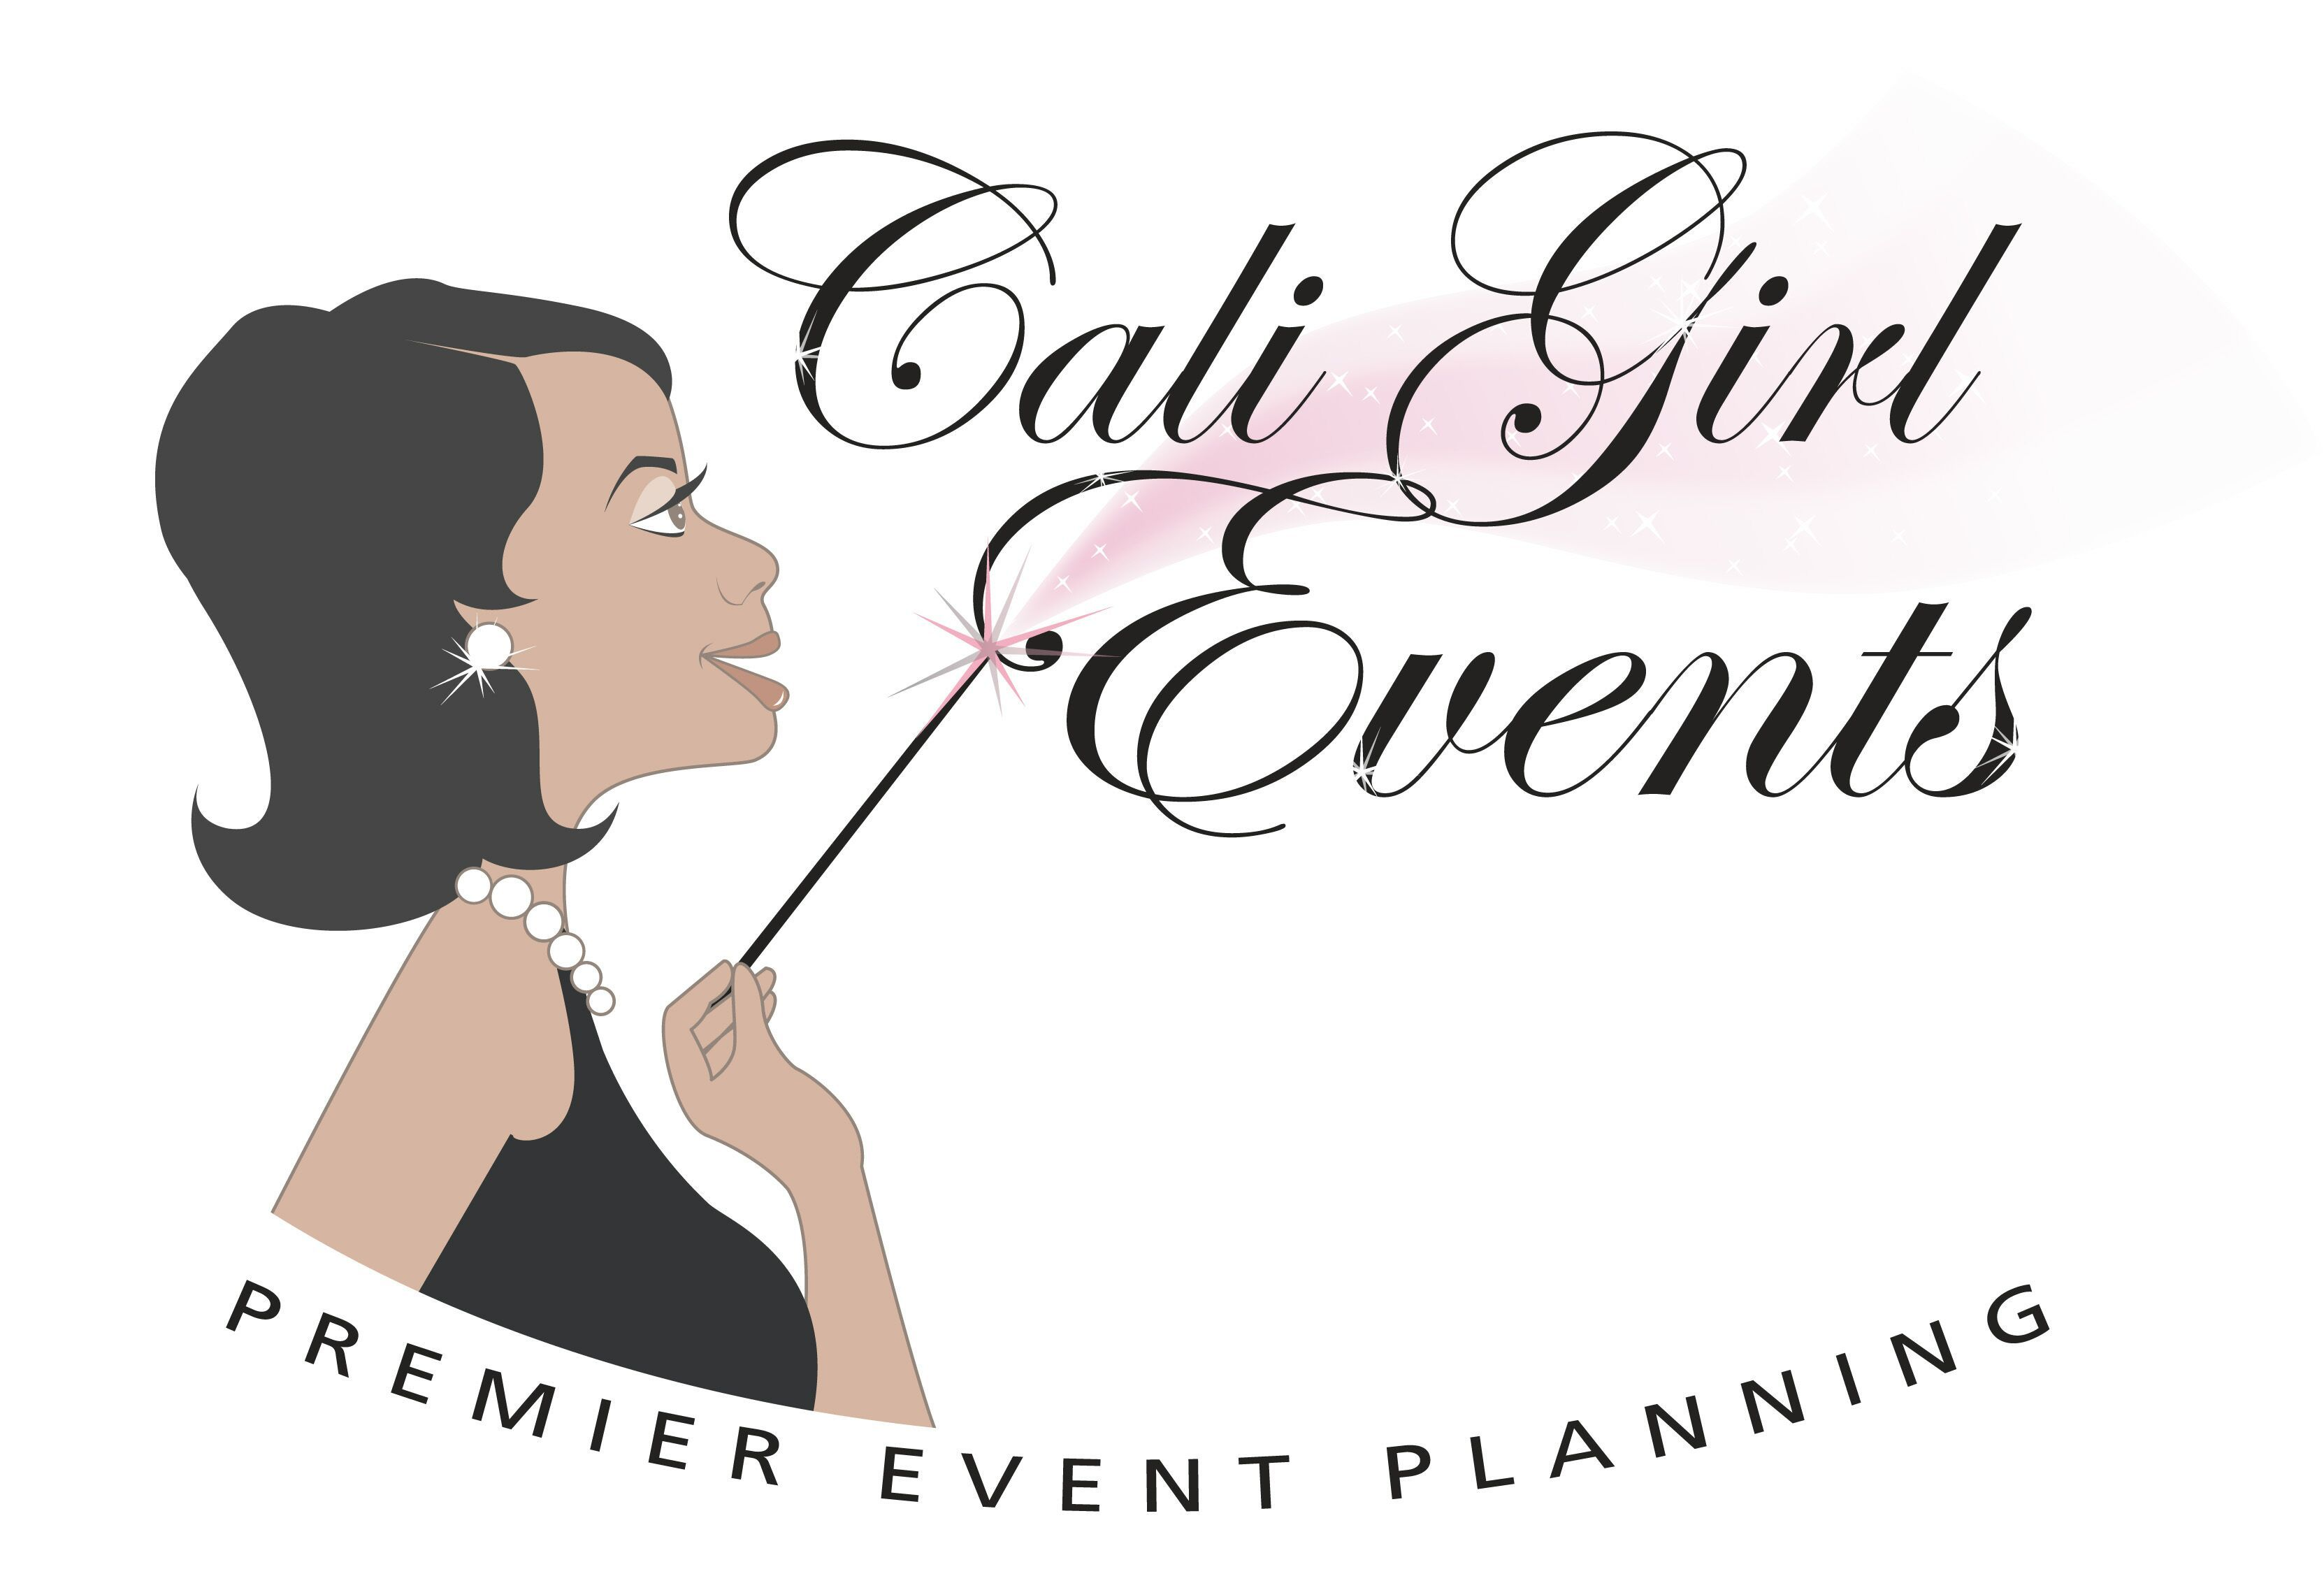 Planning, Weddings, Event, Creative, Professional, Cali girl events